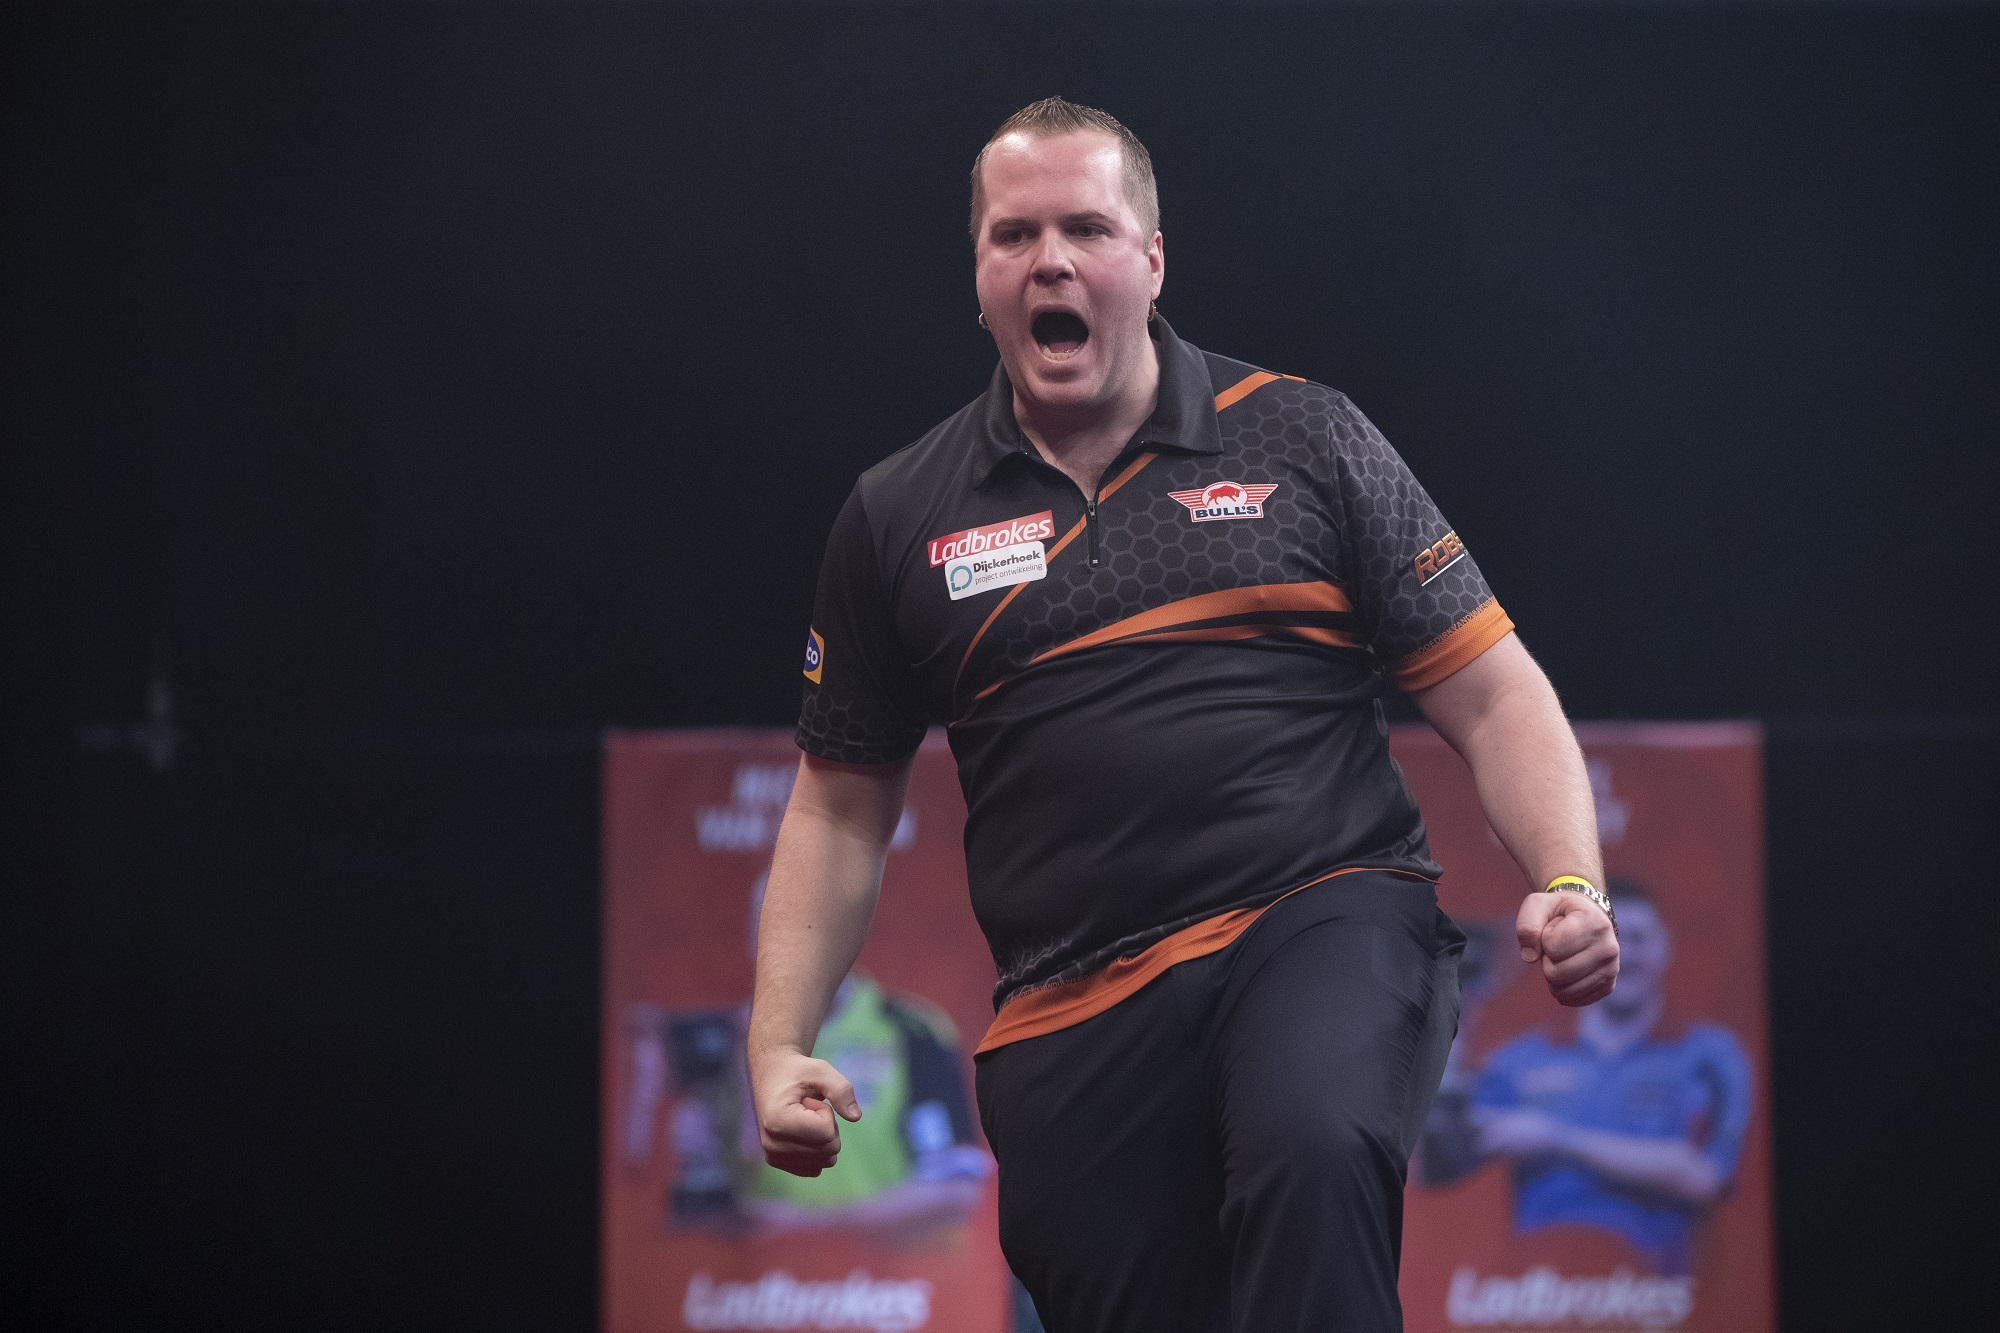 Players Championship Finals Day 2 Recommended Bets